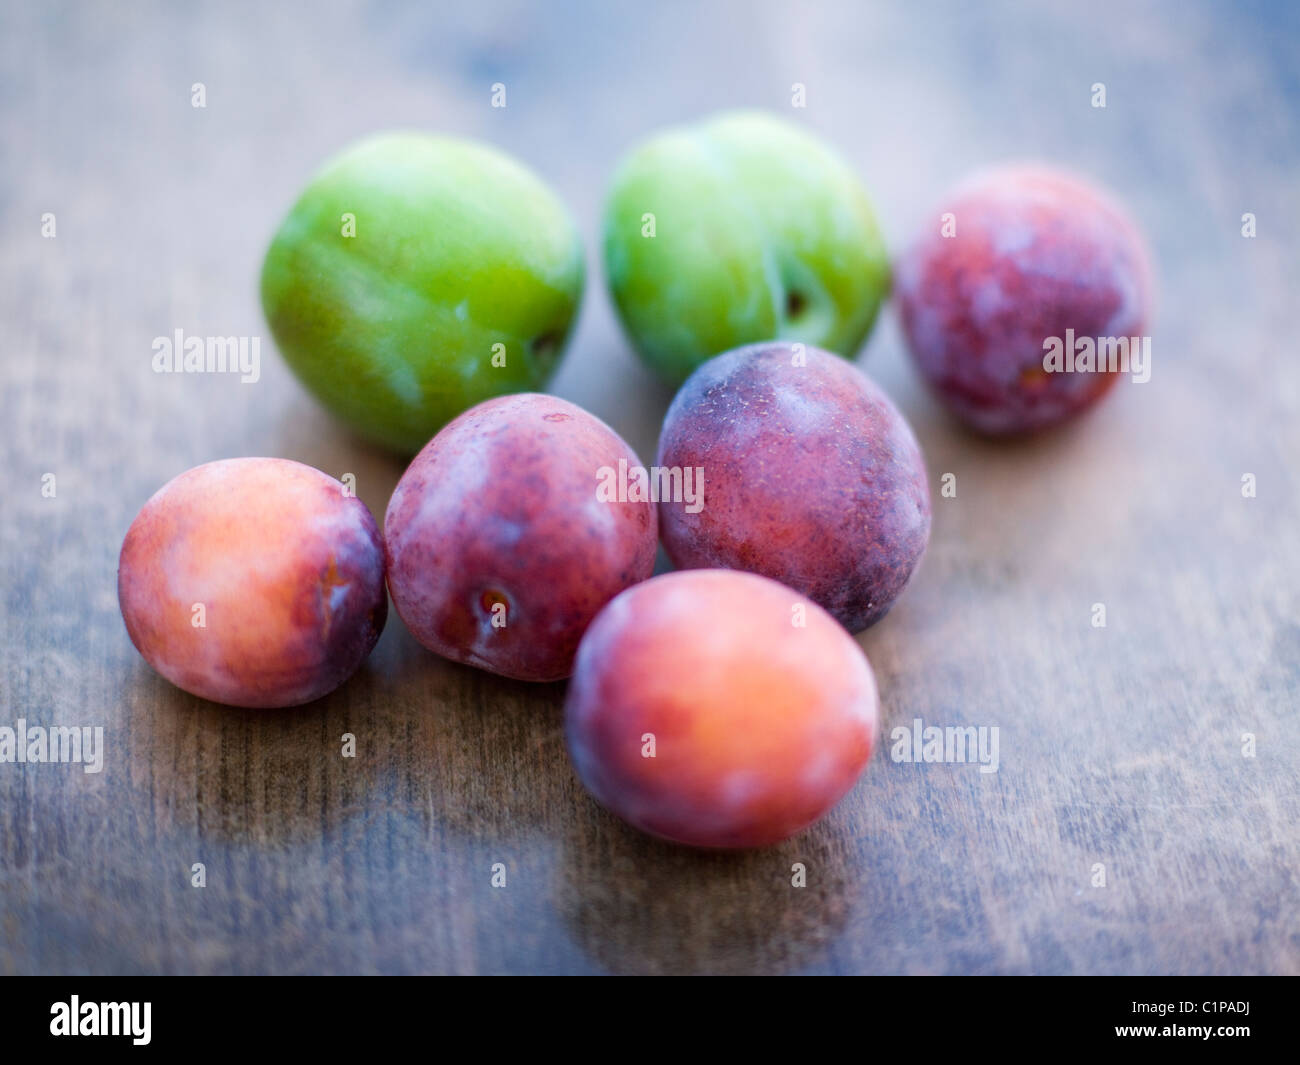 Green and purple plums on wooden table - Stock Image